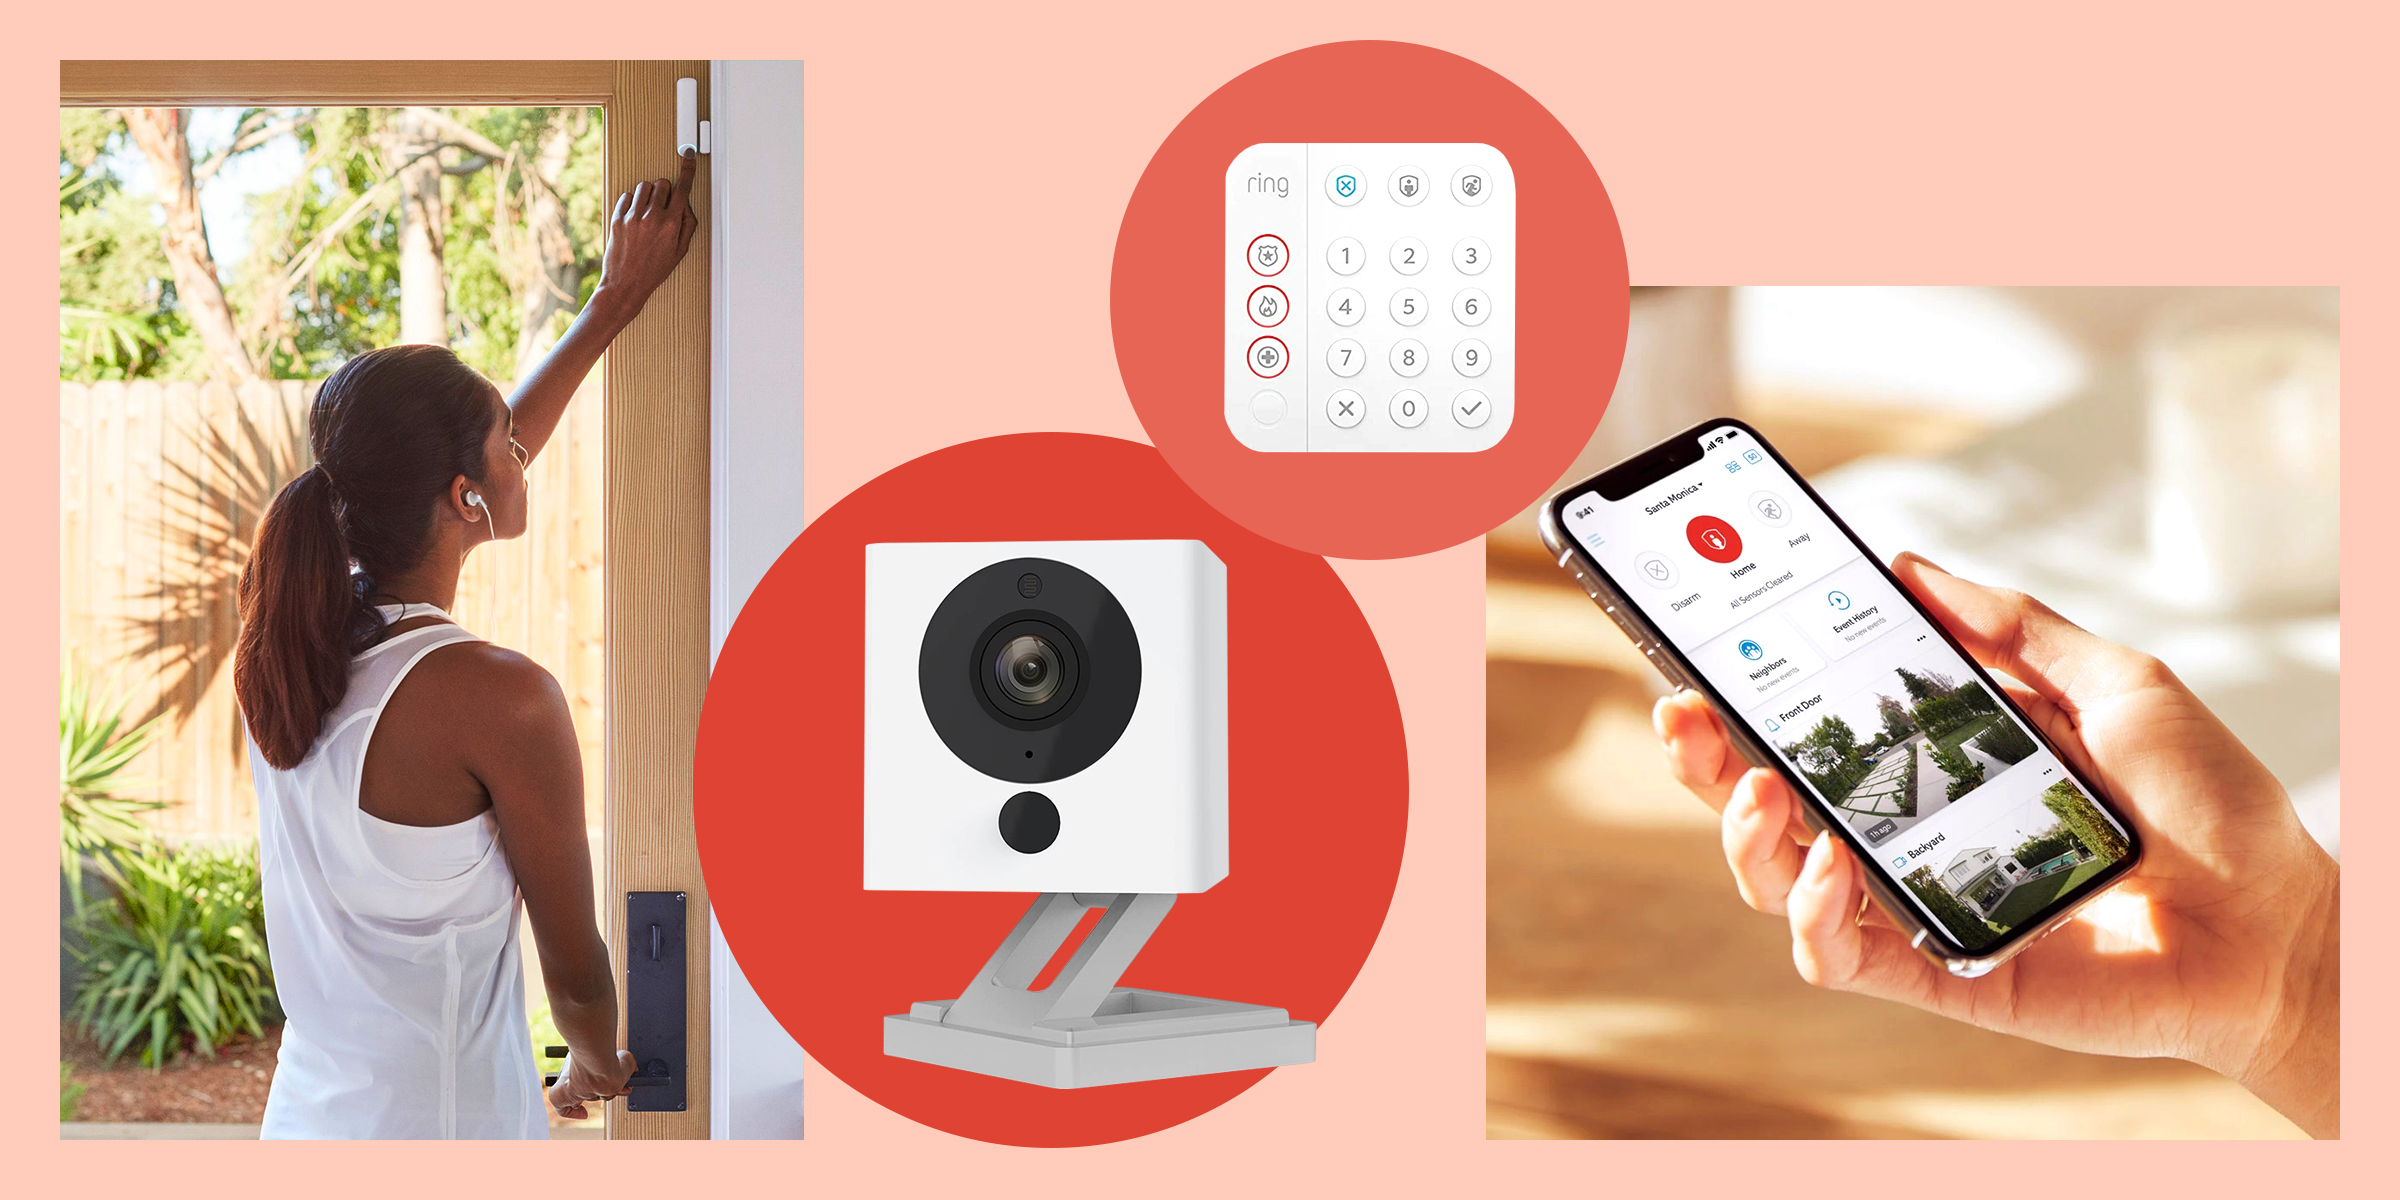 The 5 best home security systems of 2021